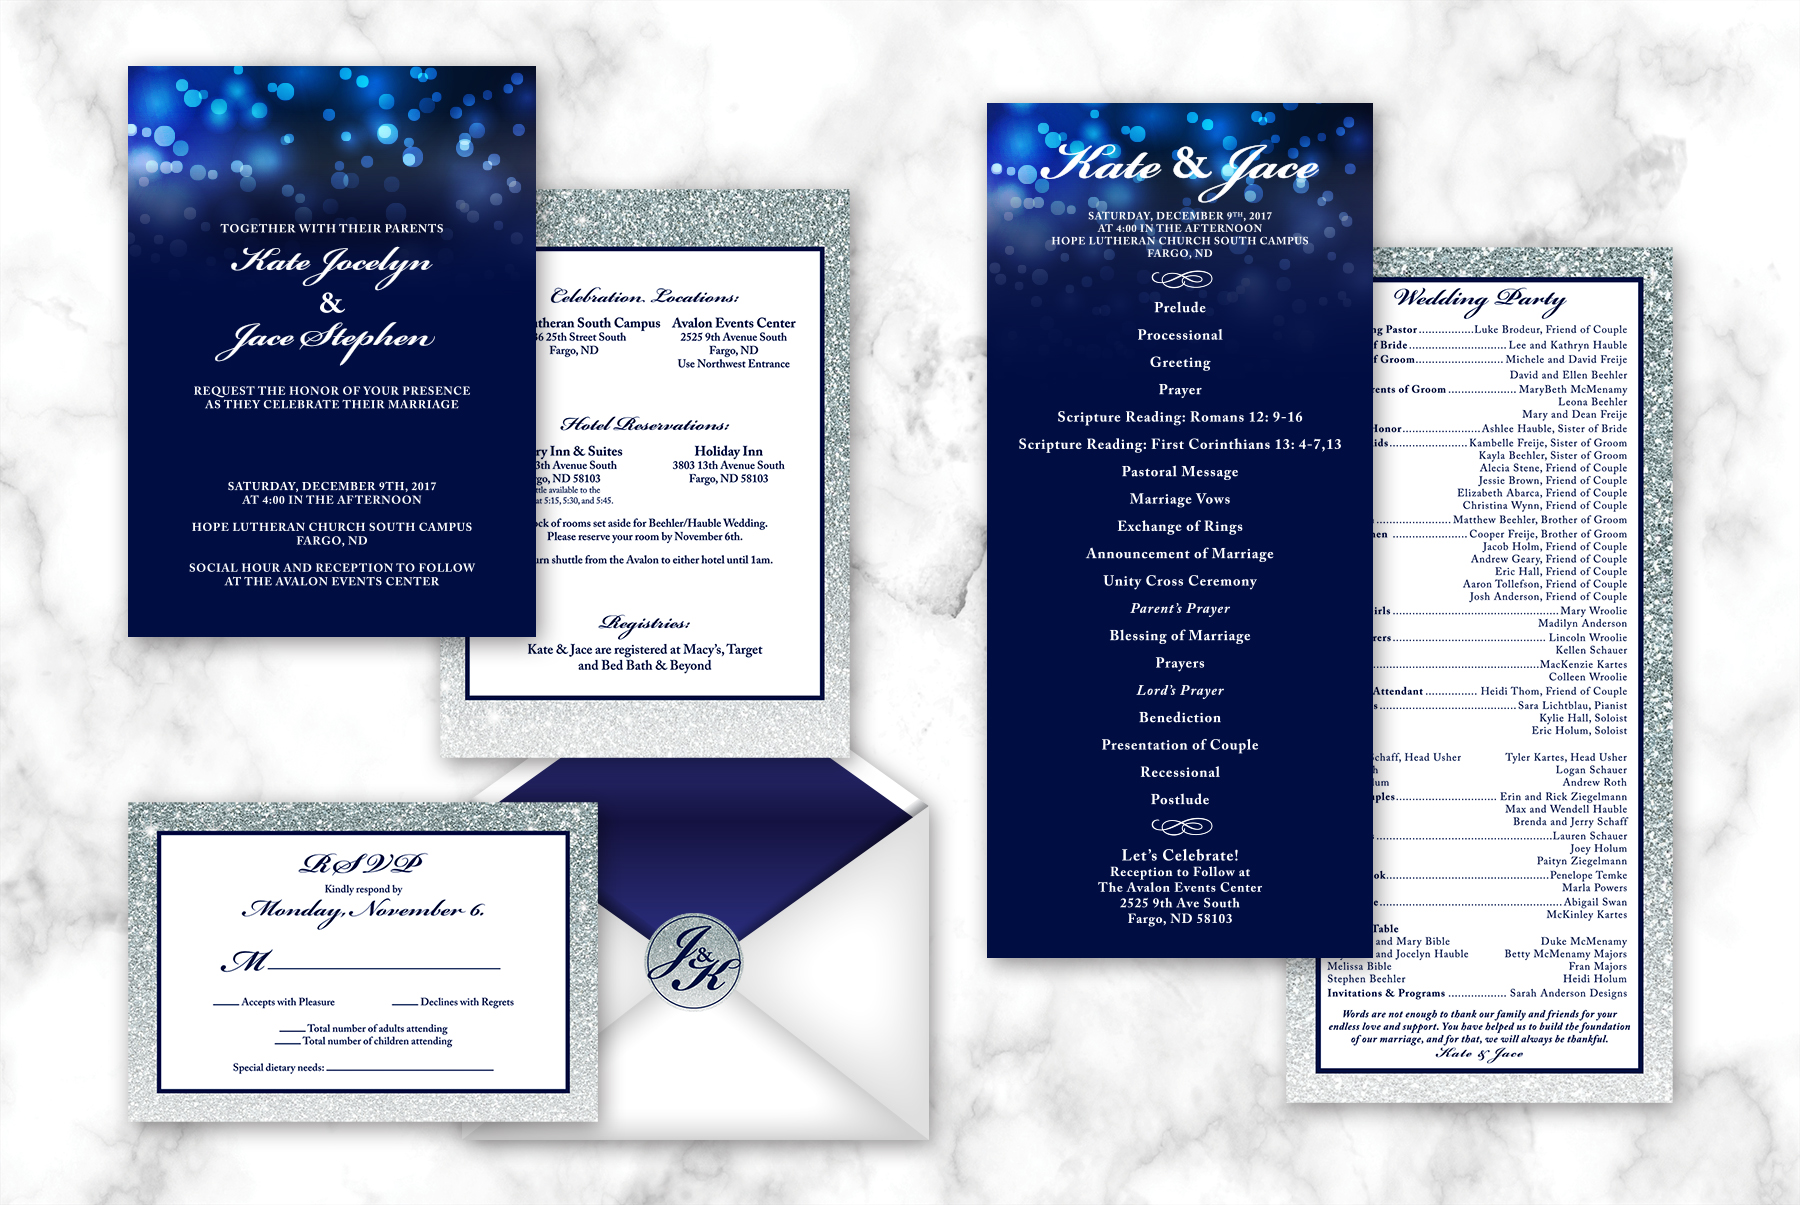 Kate & Jace Wedding Stationery   Navy and grey wedding stationery that is classic, understated and simple with a touch of sparkle. The design allows the colors and visual textures to shine. Package consisted of: Invitation, RSVP Card, Closure Sticker and Program.  Read more about this project here.